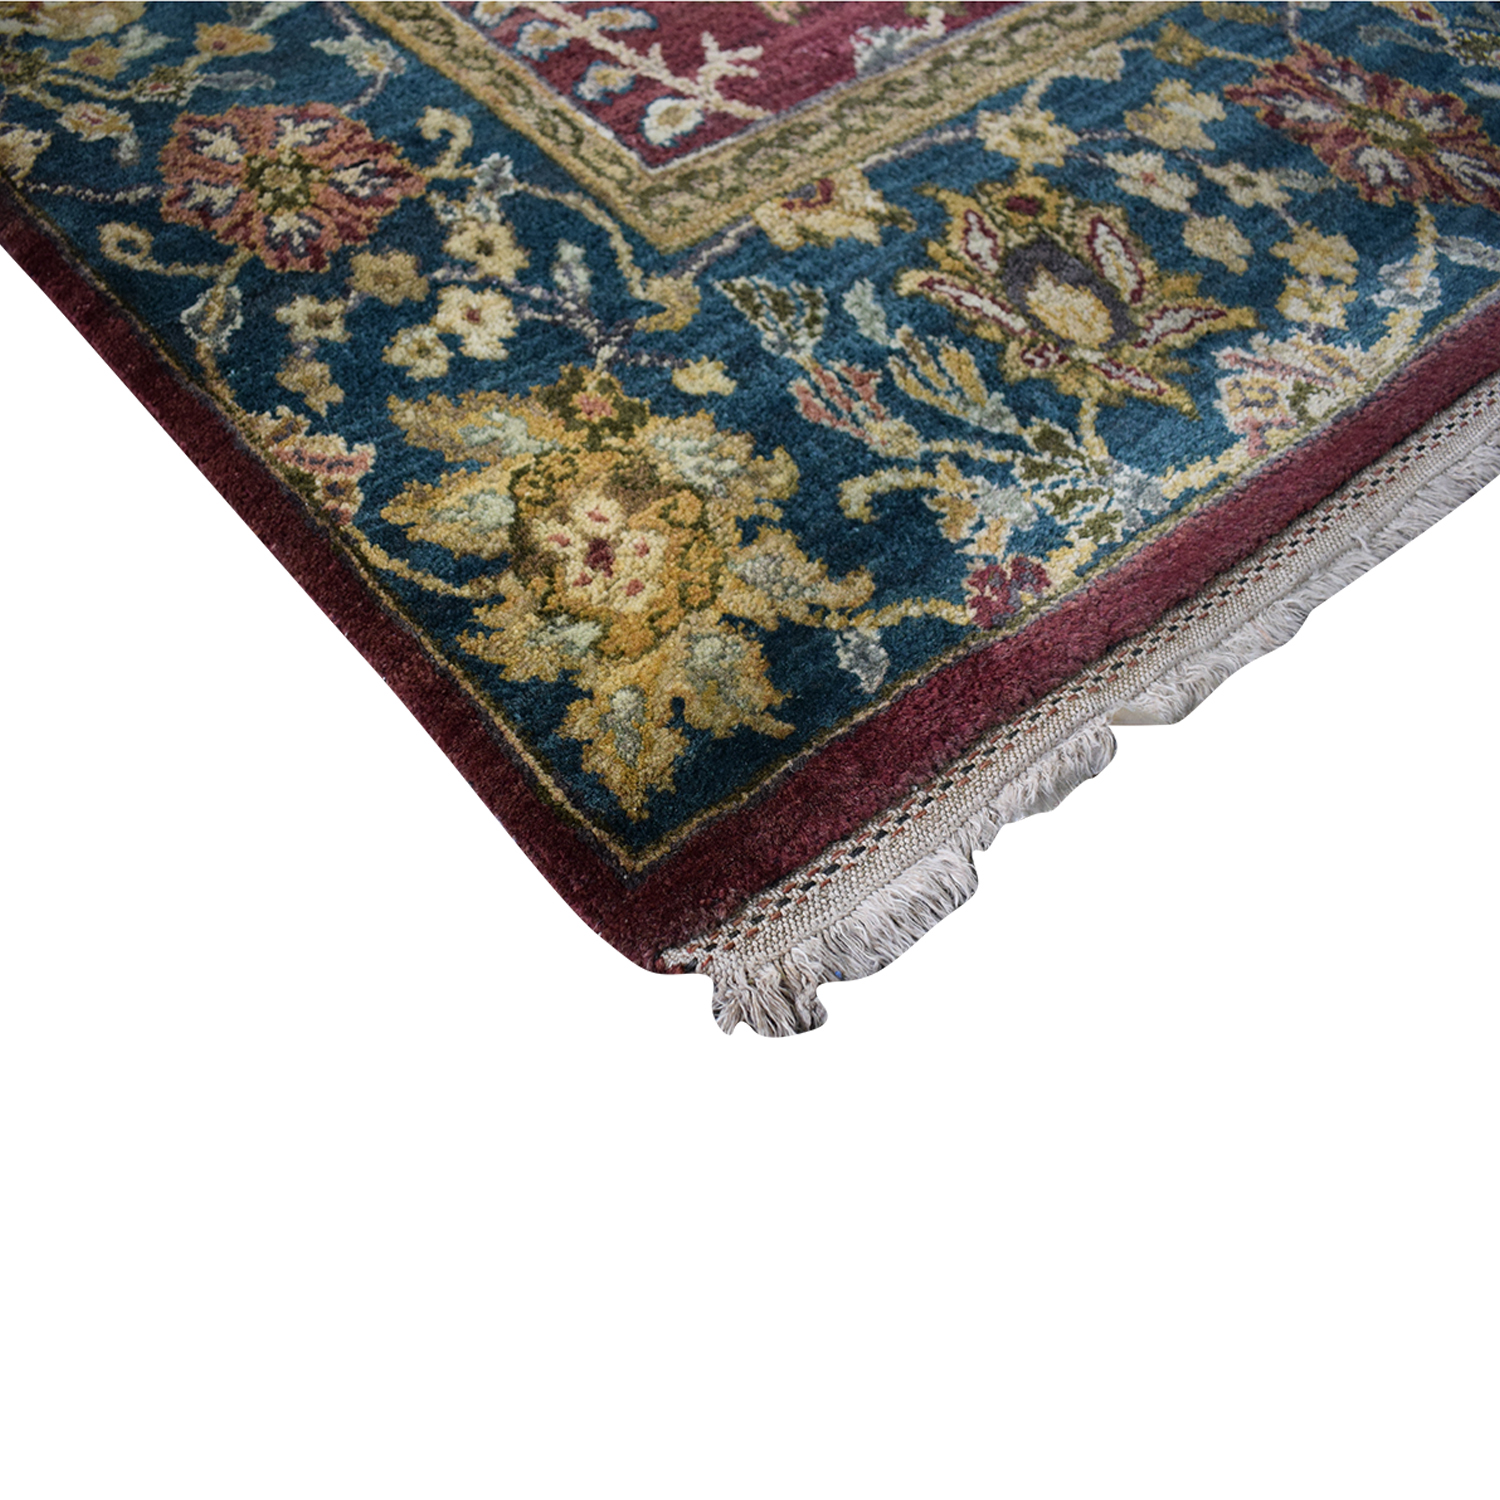 shop ABC Carpet & Home Rug ABC Carpet & Home Rugs